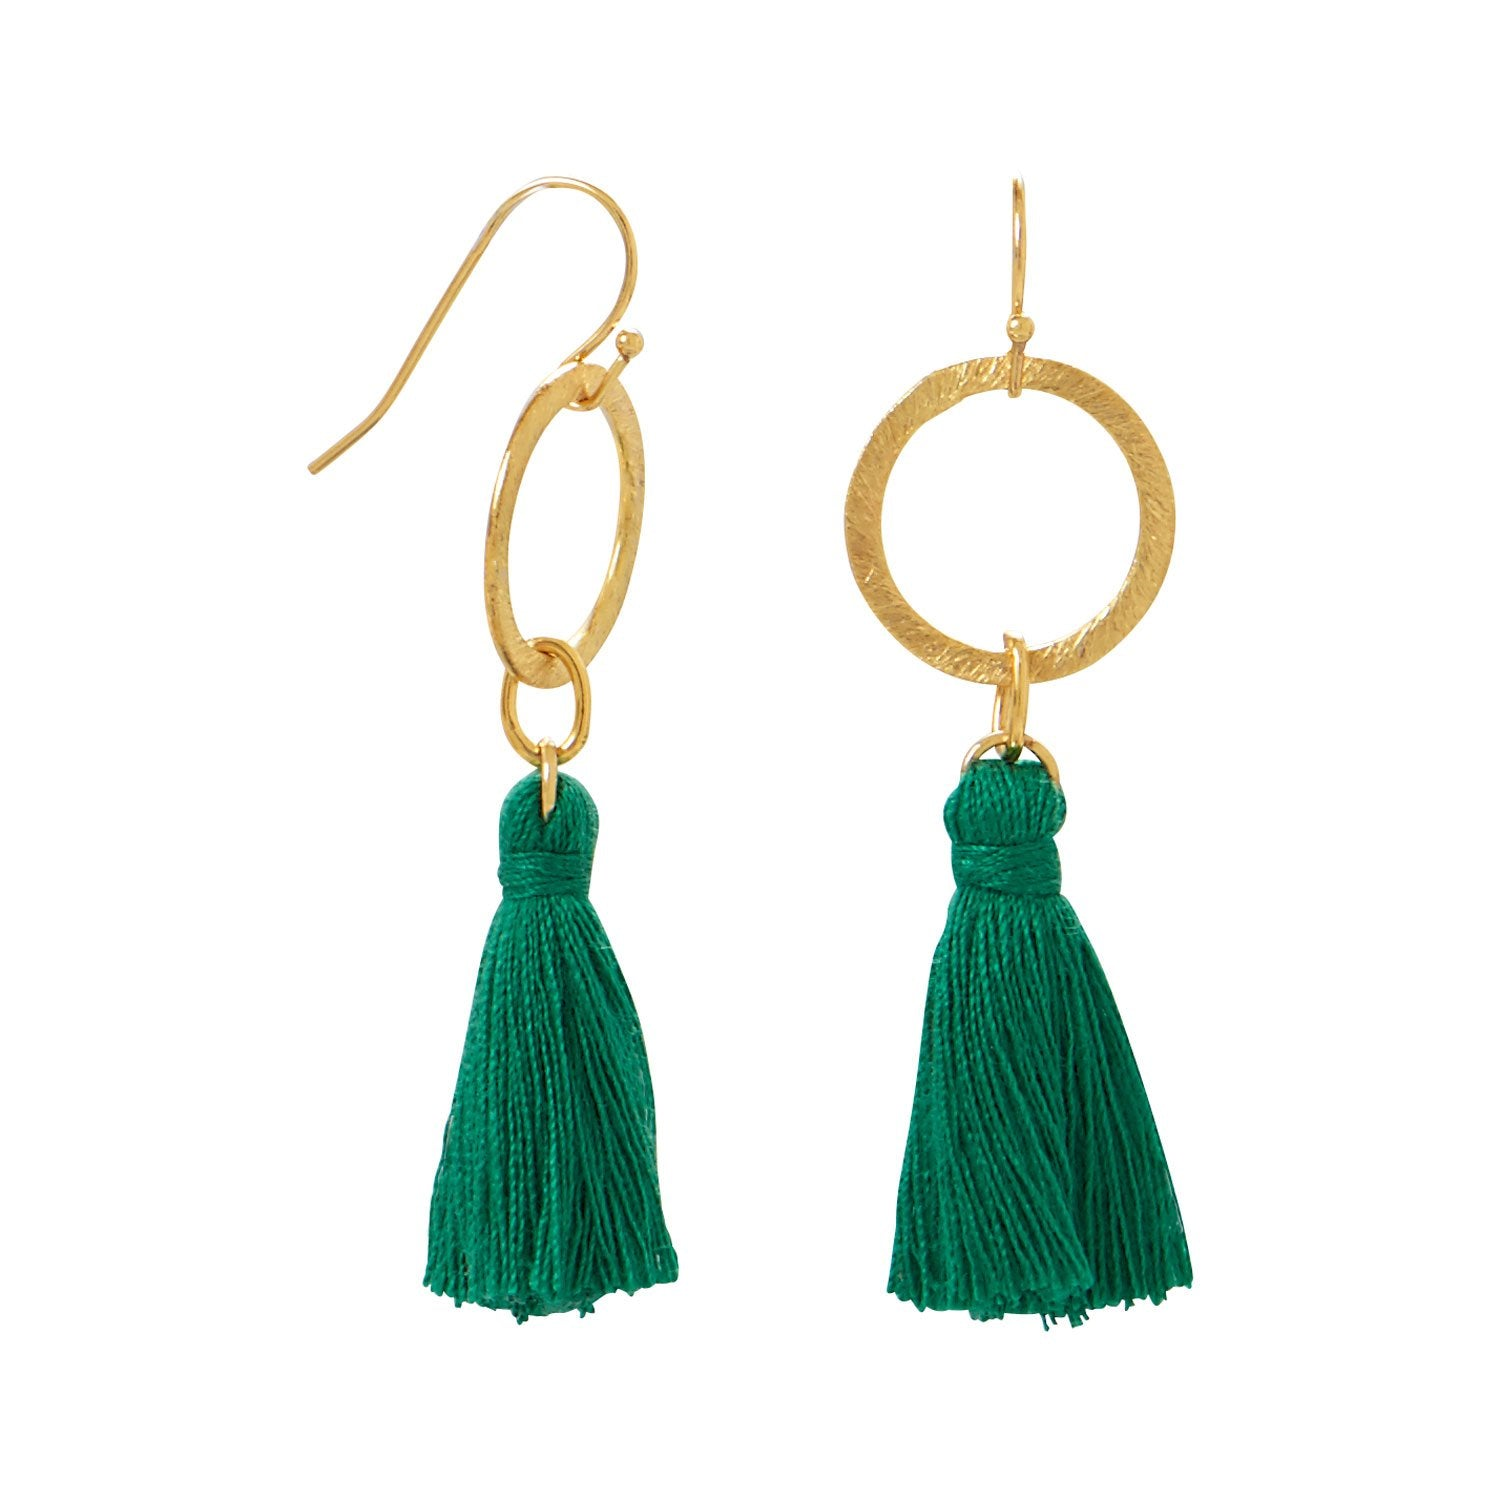 Green Threaded Tassel Earrings, Earrings, [GLITIC], [Personalized_Jewelry], [Vegan_Bags]